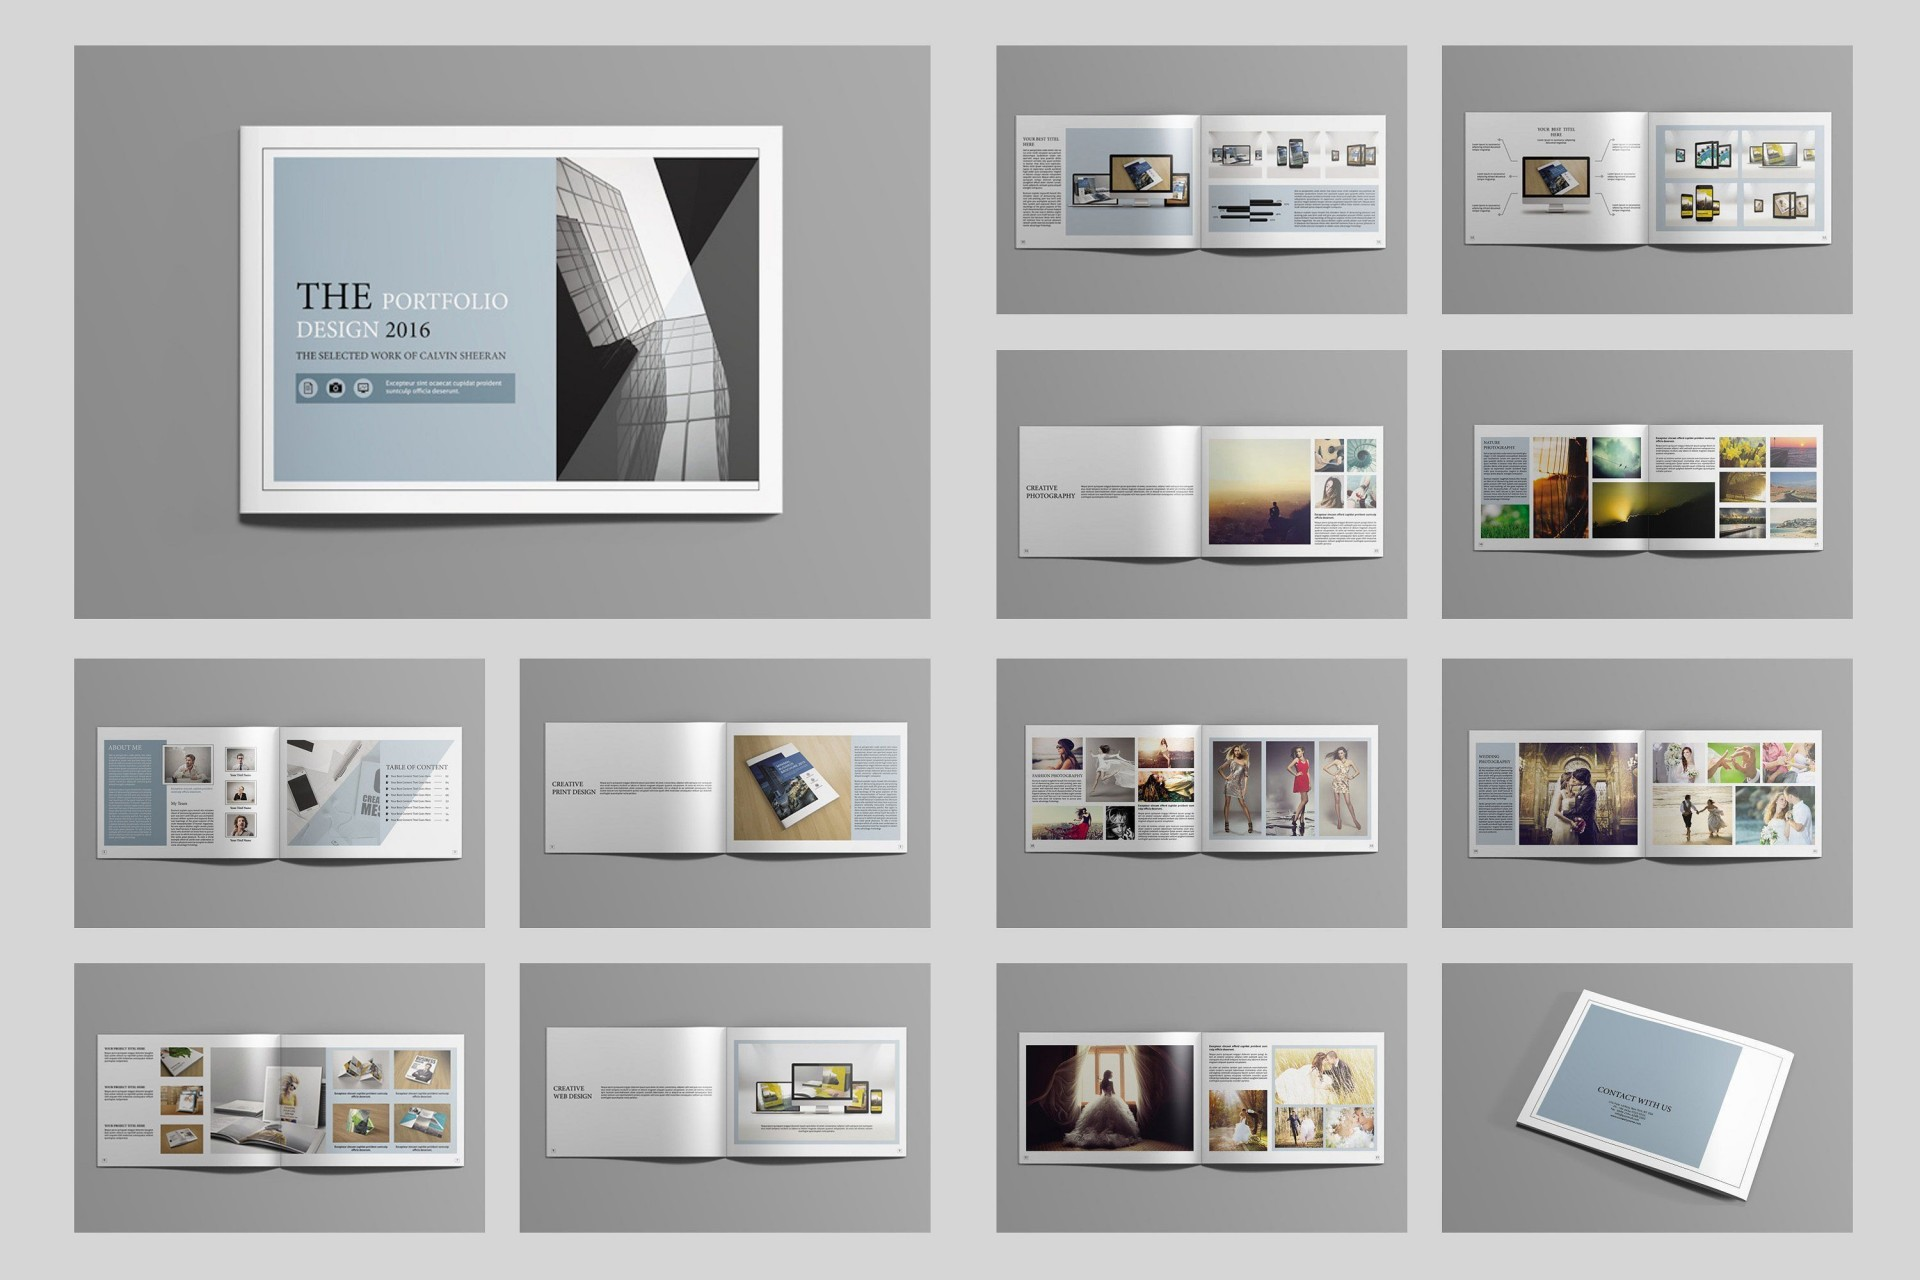 002 Stunning In Design Portfolio Template Inspiration  Templates Interior Layout Indesign Free1920